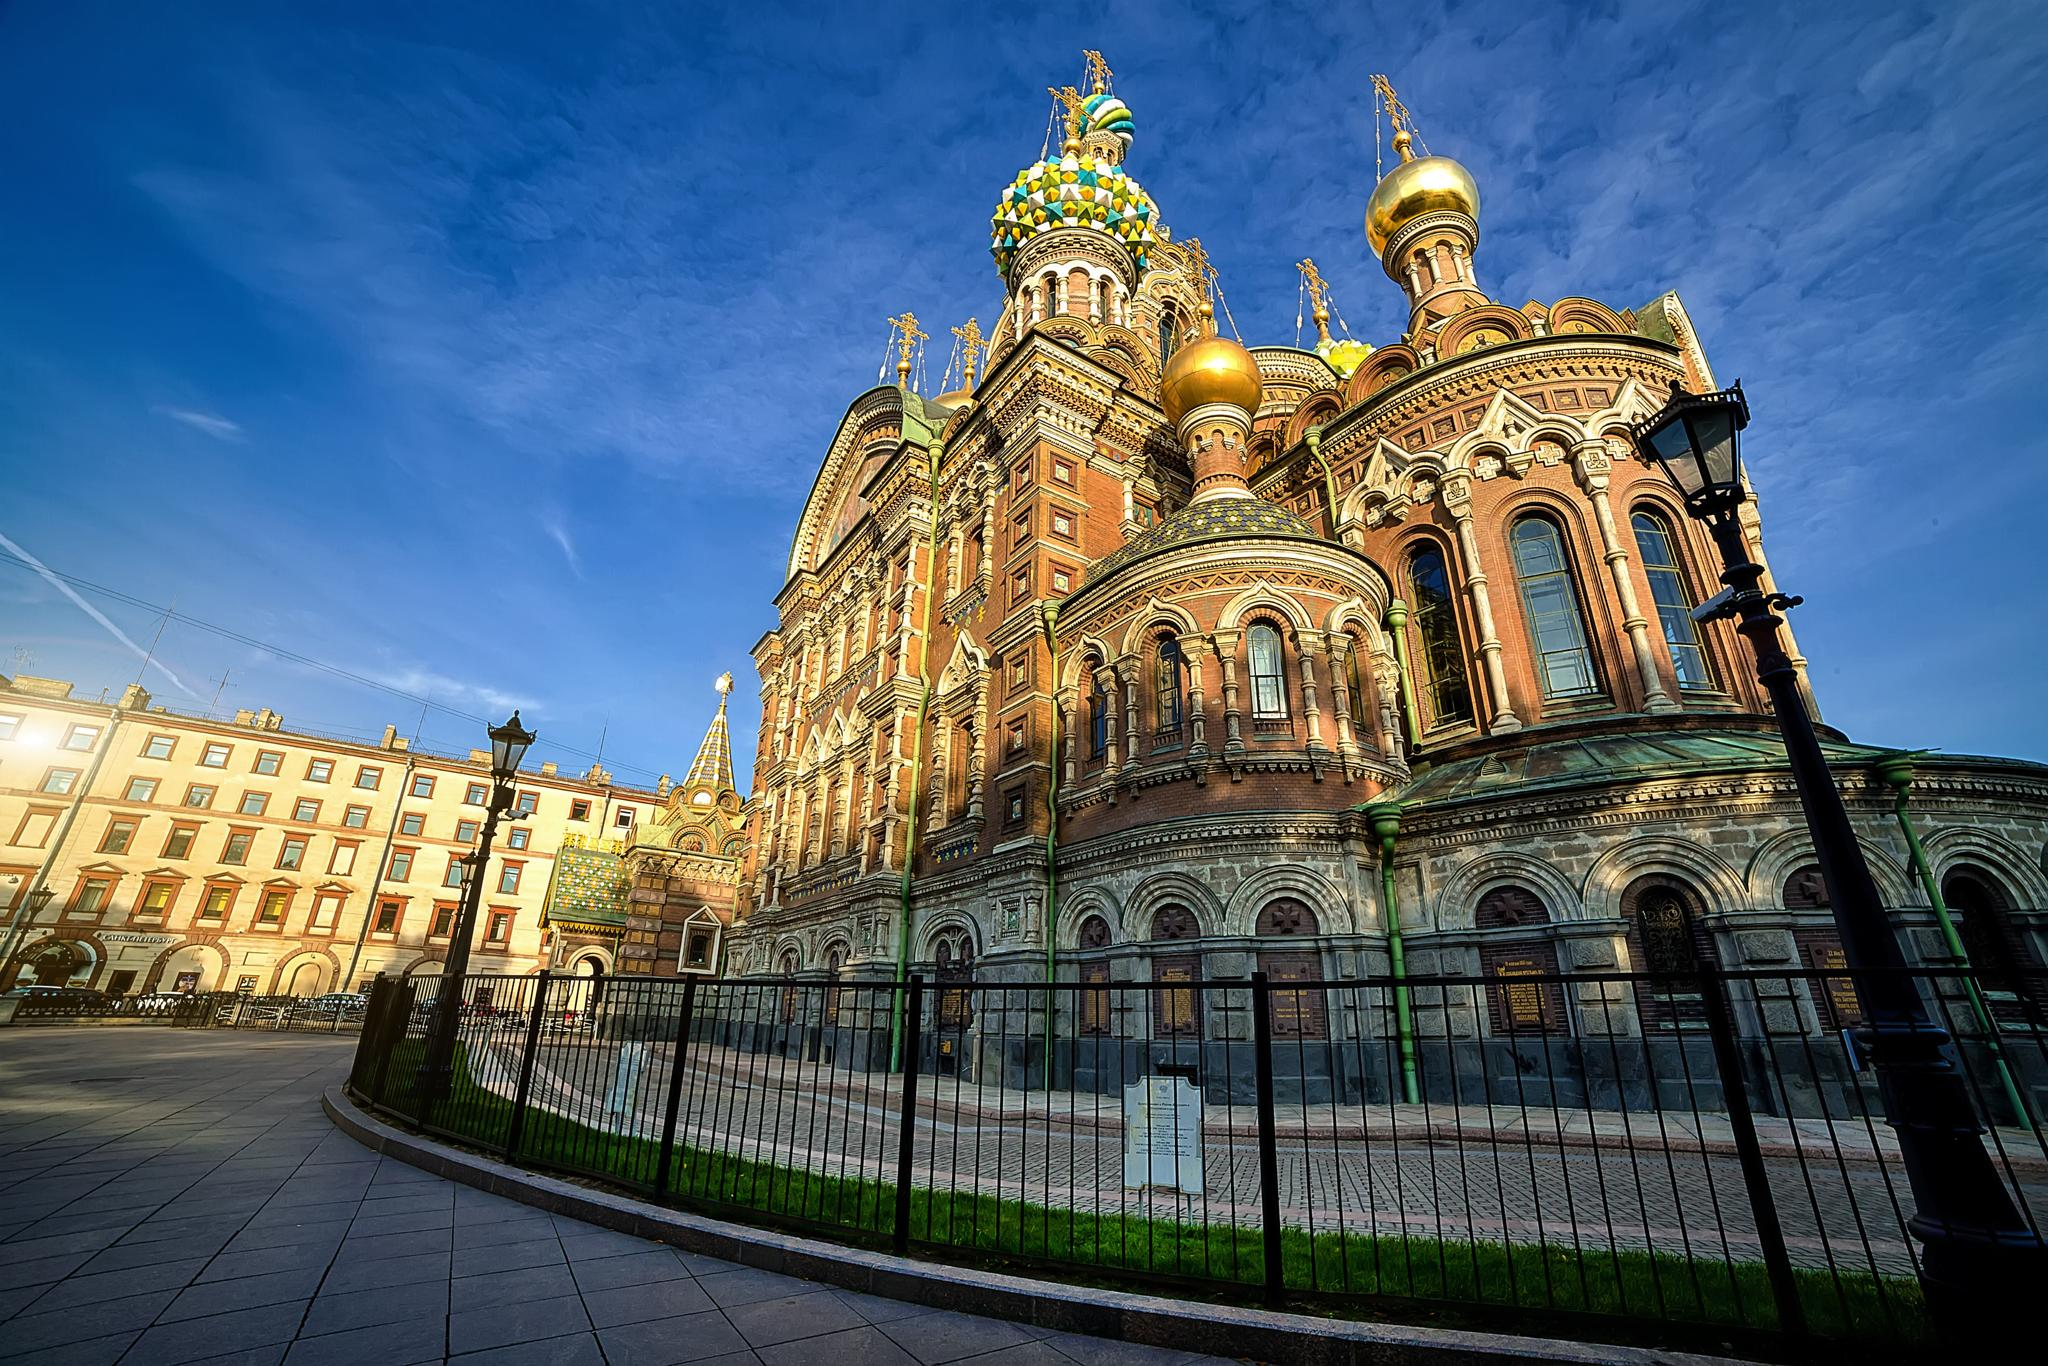 Savior on Blood, Cathederal in Saint-Petersburg by antonburkhan